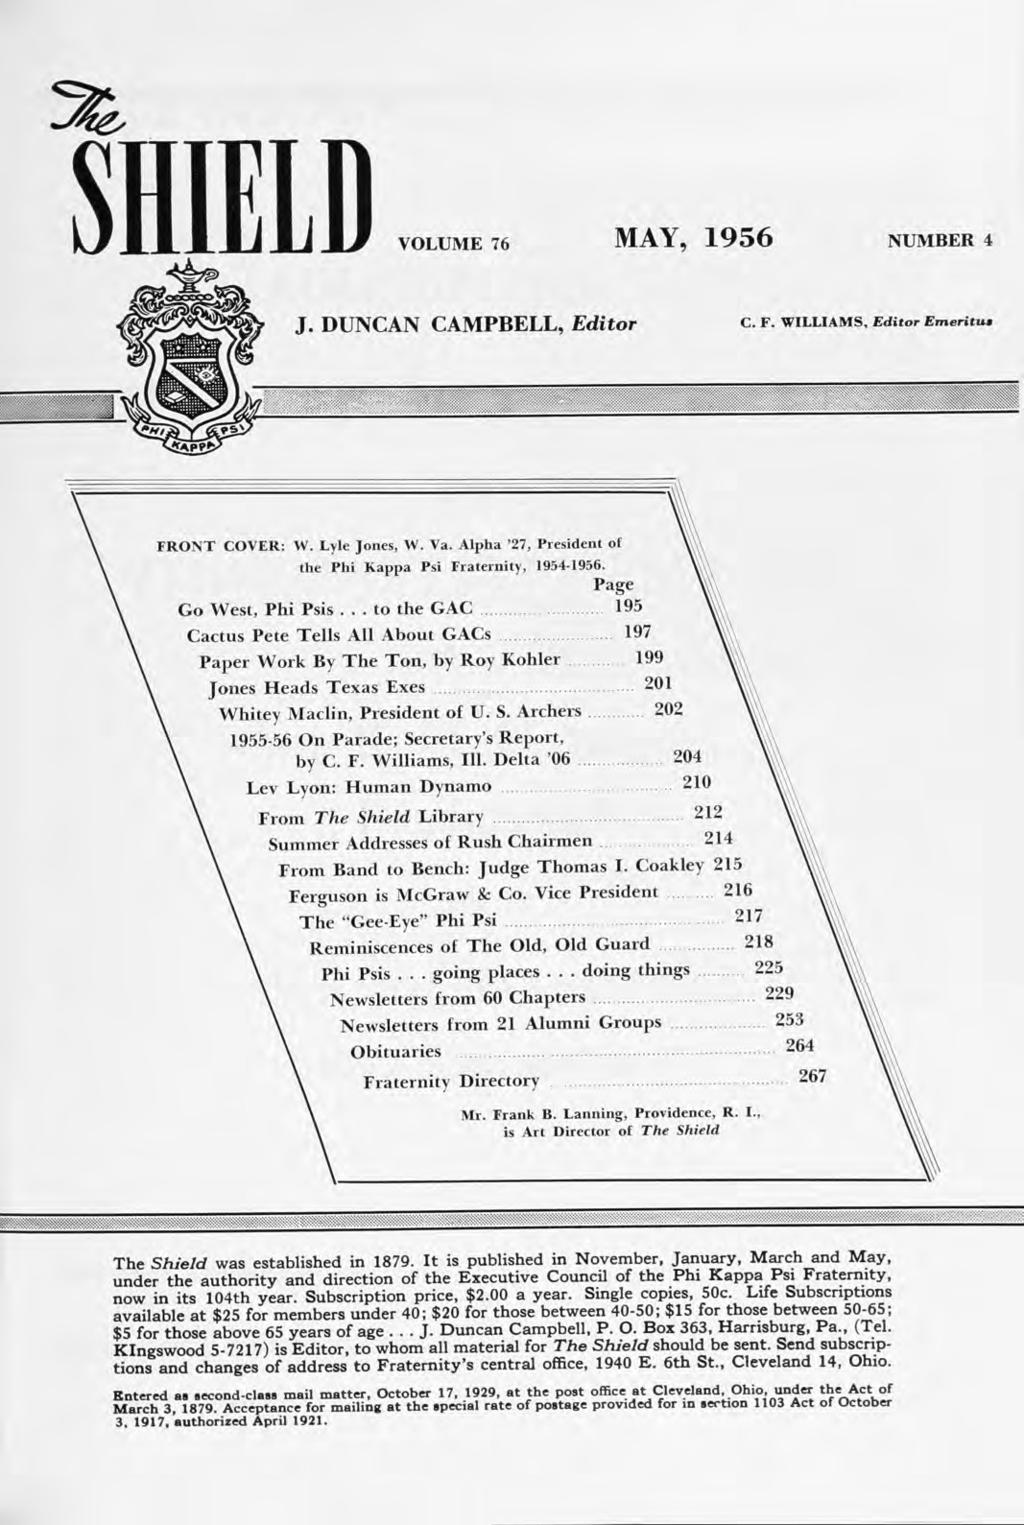 SHIEID VOLUME 76 MAY, 1956 NUMBER 4 J. DUNCAN CAMPBELL, Editor C. F. WILLIAMS, Editor Emeritua FRONT COVER: W. Lyle Jones, W. Va. Alpha '27, President ot the Phi Kappa Psi Fraternity, 1954-1956.